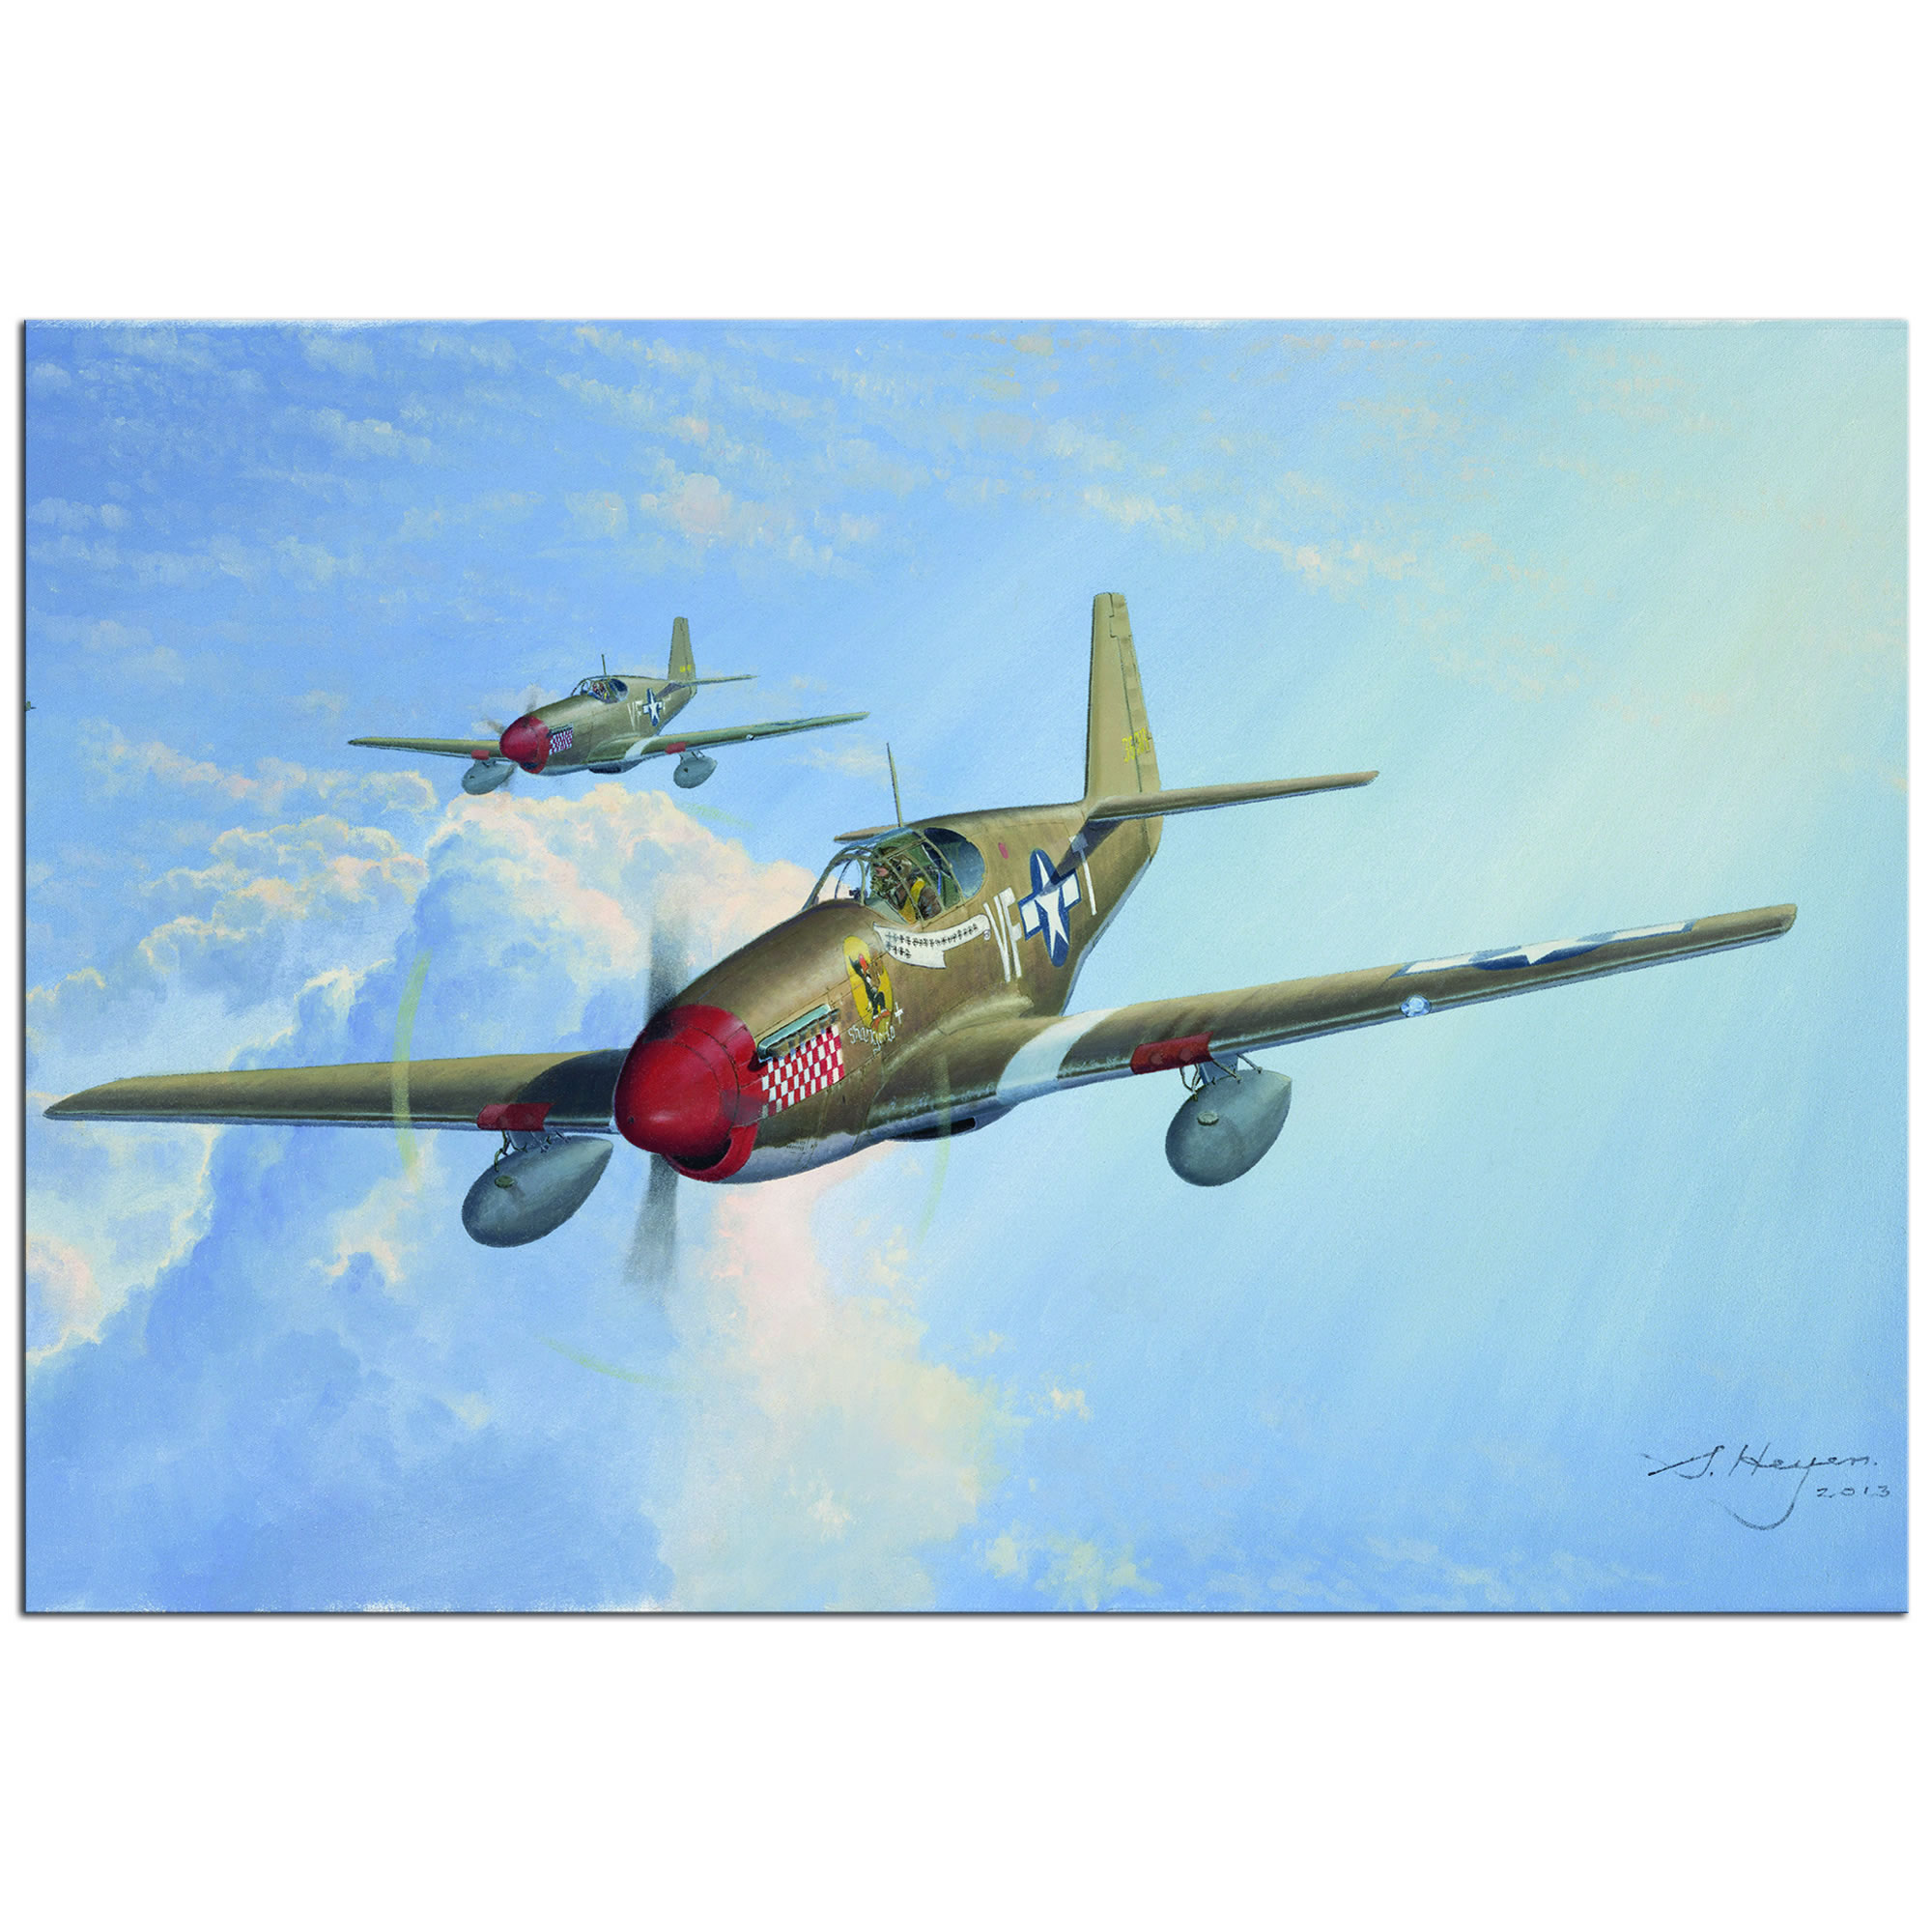 P51 - World War 2 Metal Wall Art